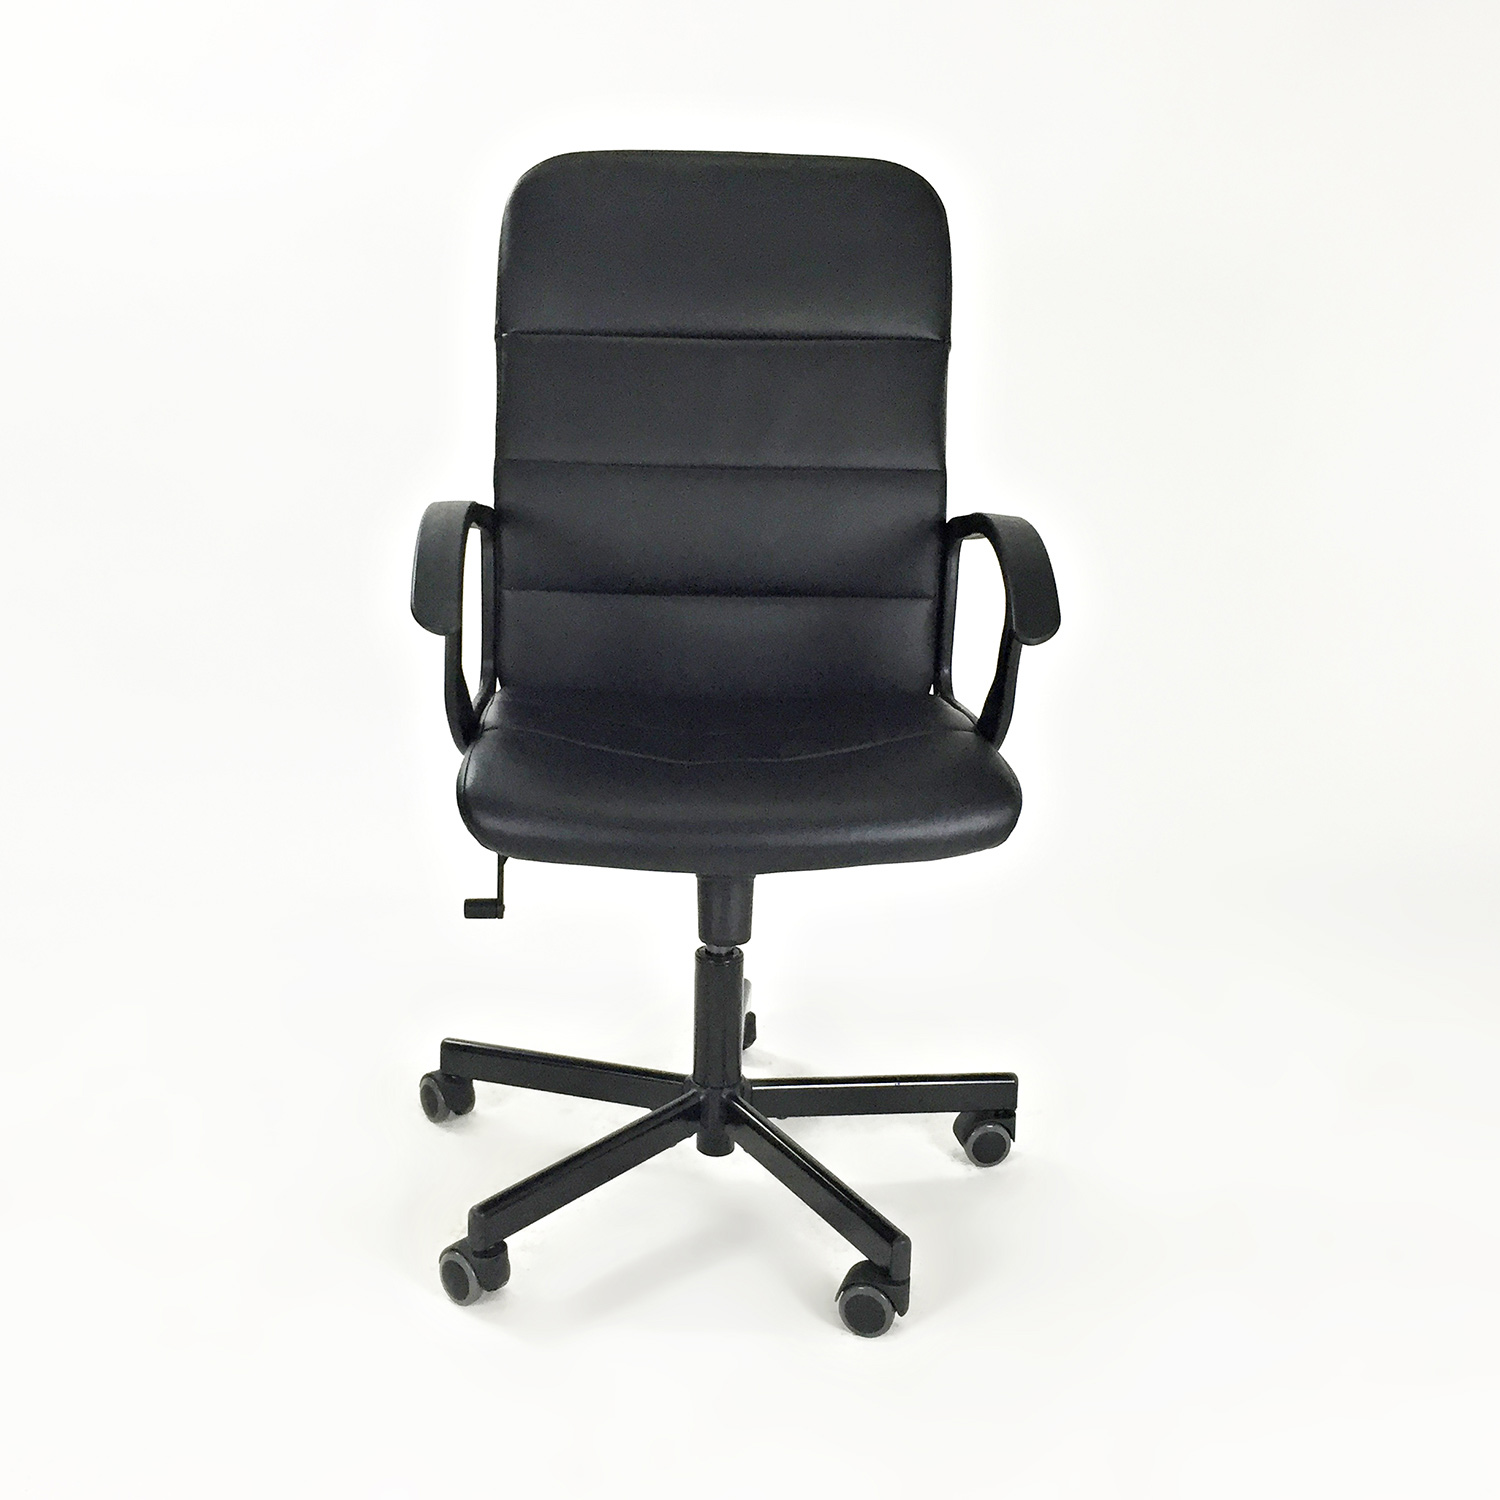 IKEA Black Office Chair nj